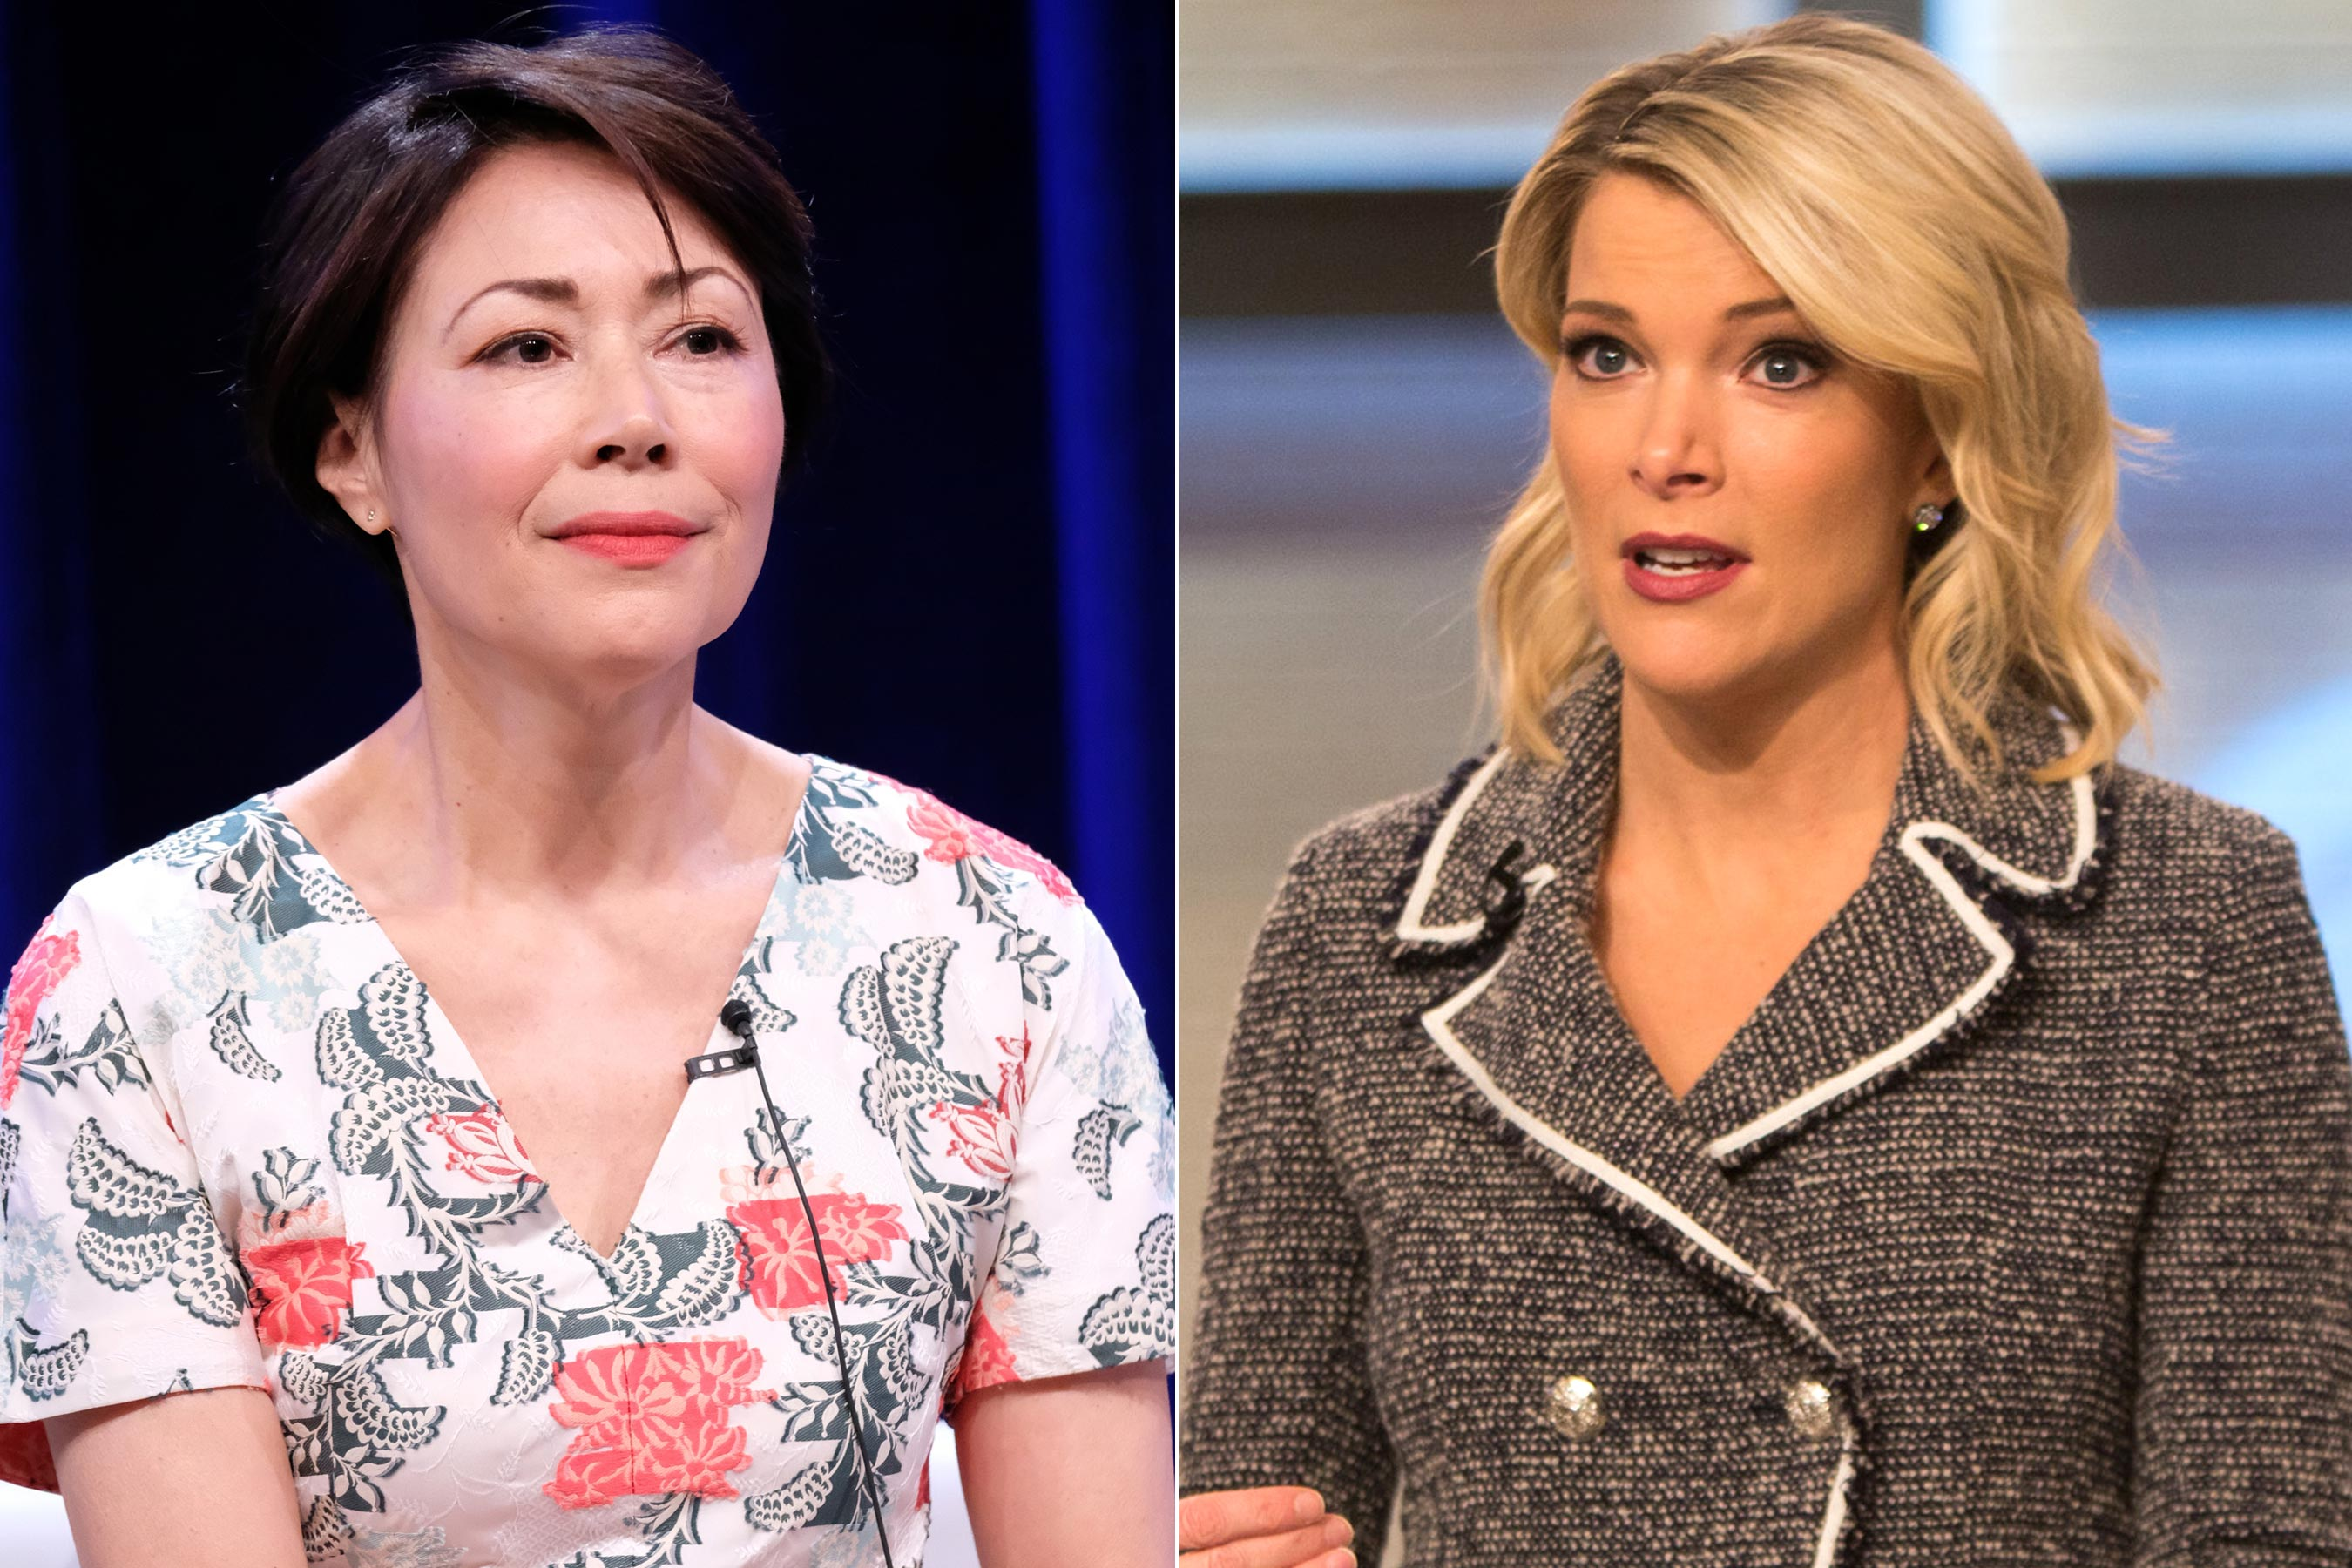 Ann Curry on Megyn Kelly's clapback: Not journalism